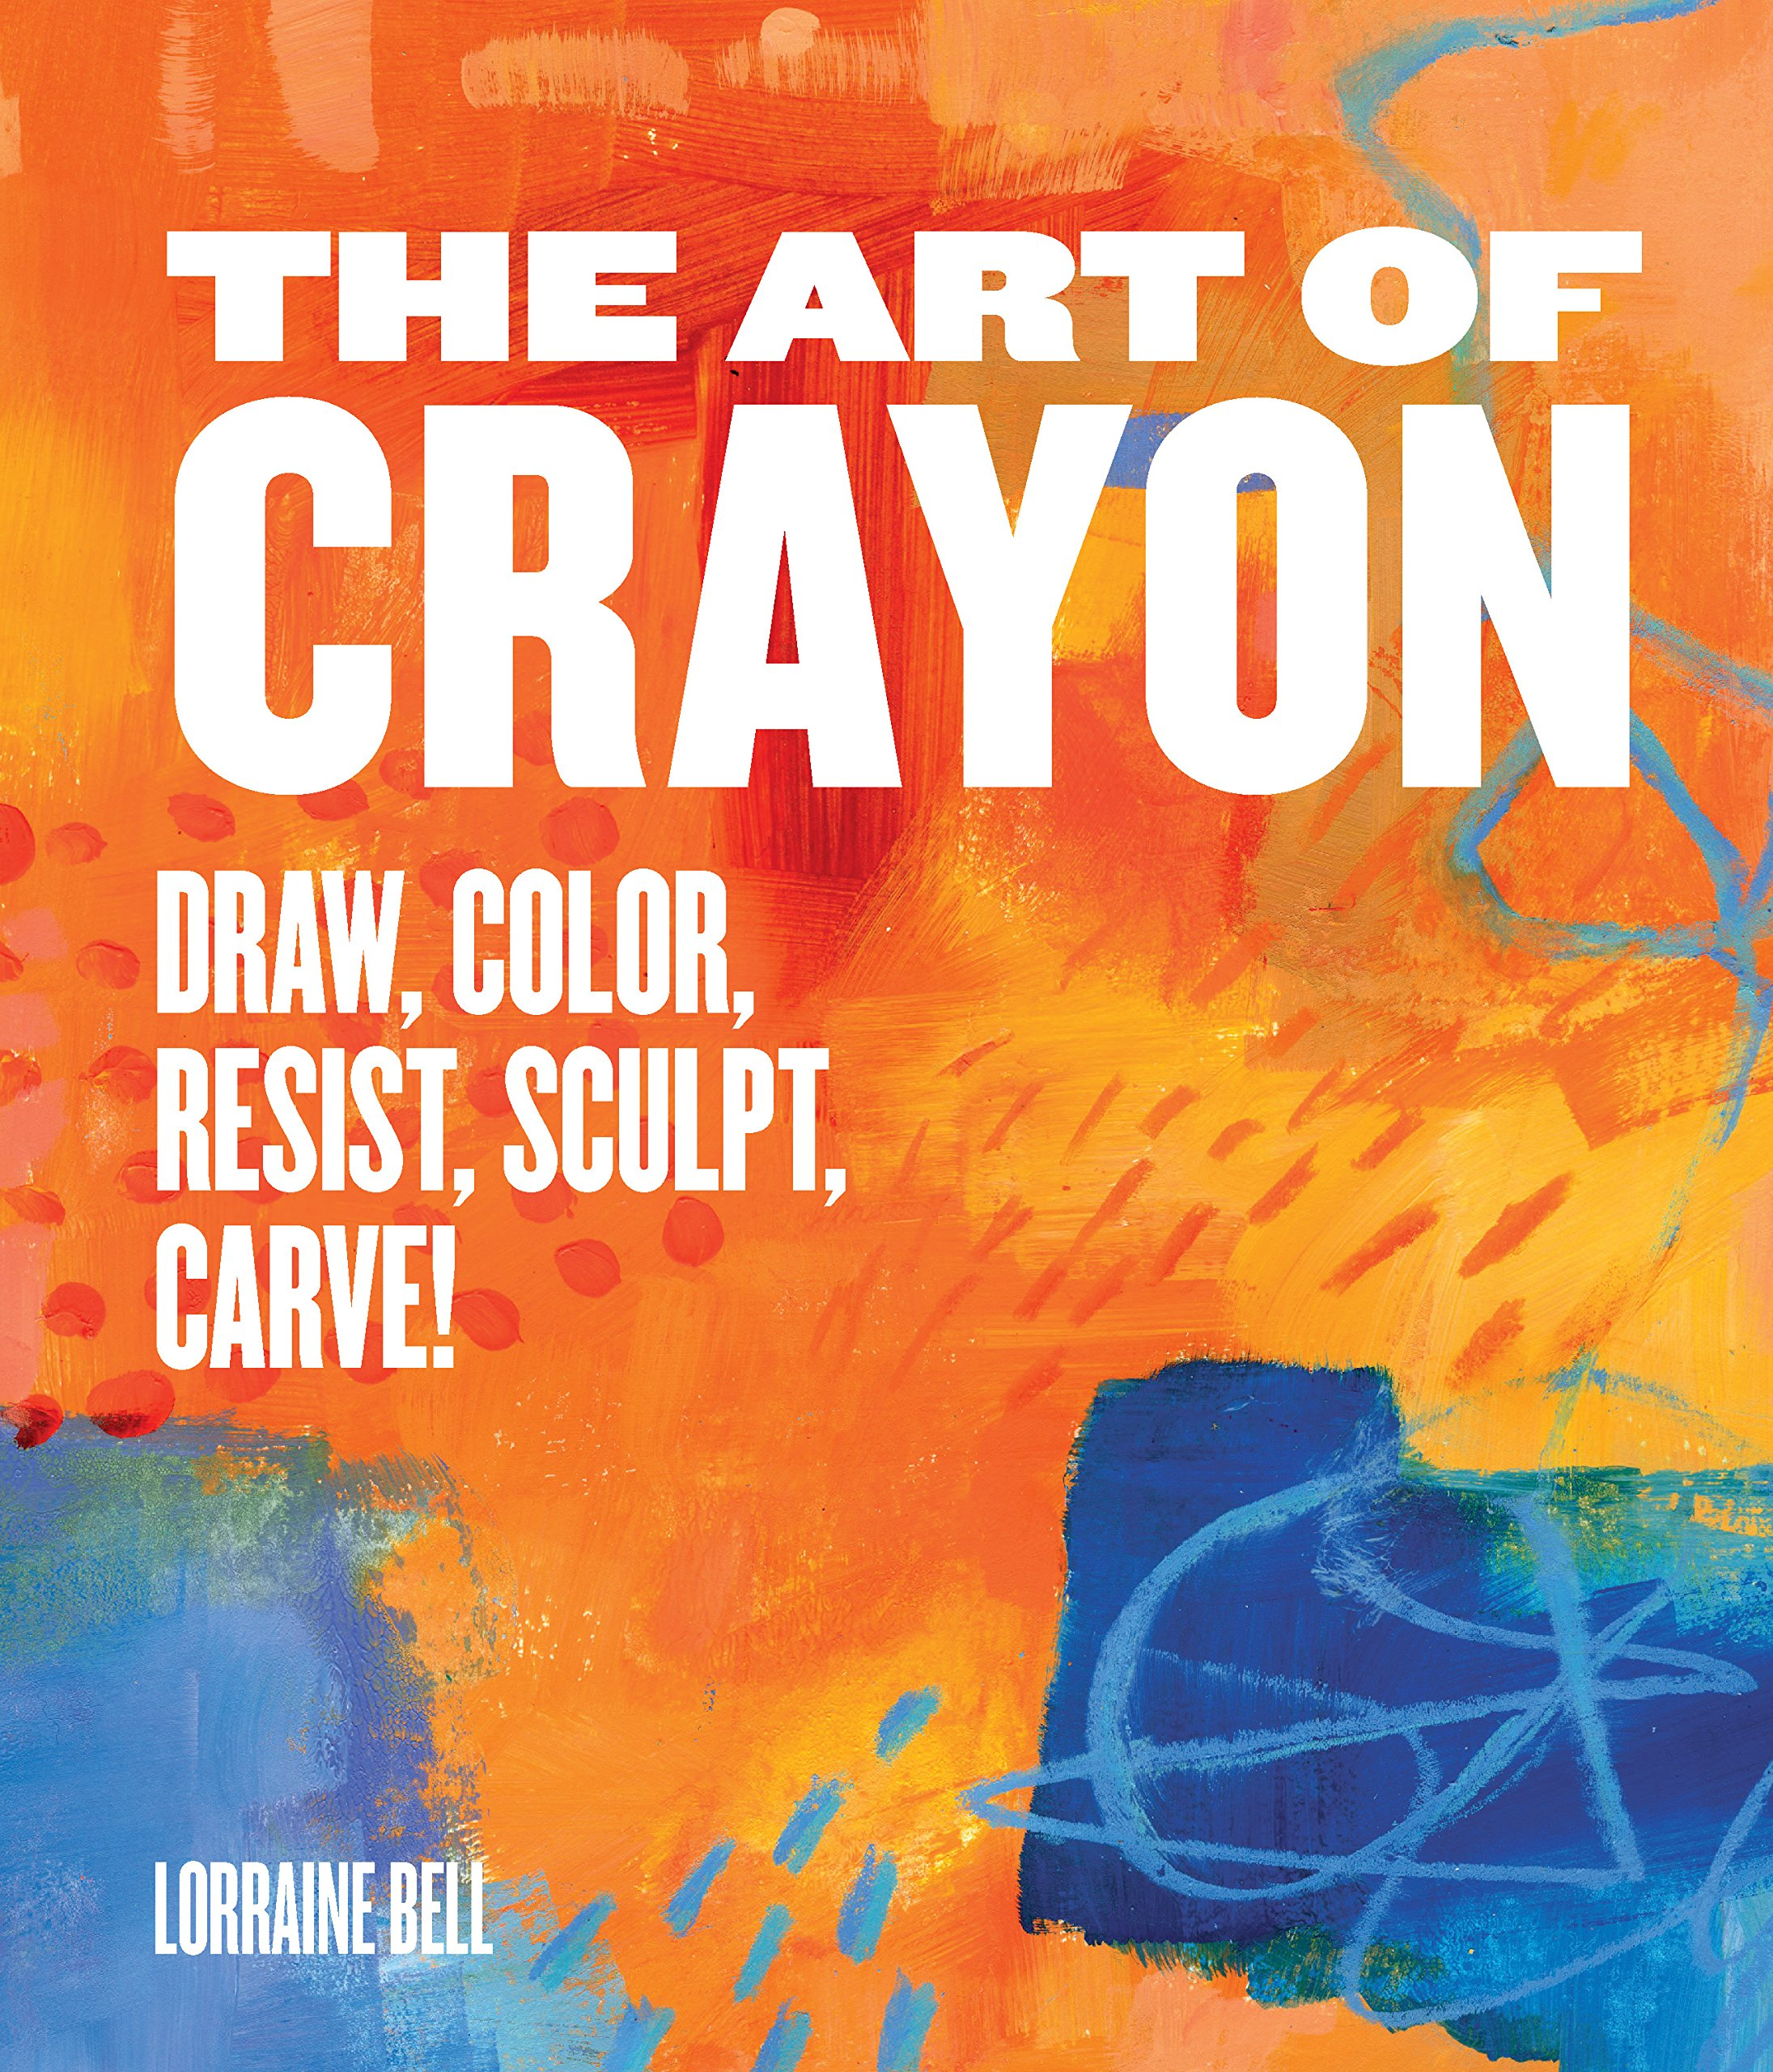 Download The Art of Crayon: Draw, Color, Resist, Sculpt, Carve! ebook